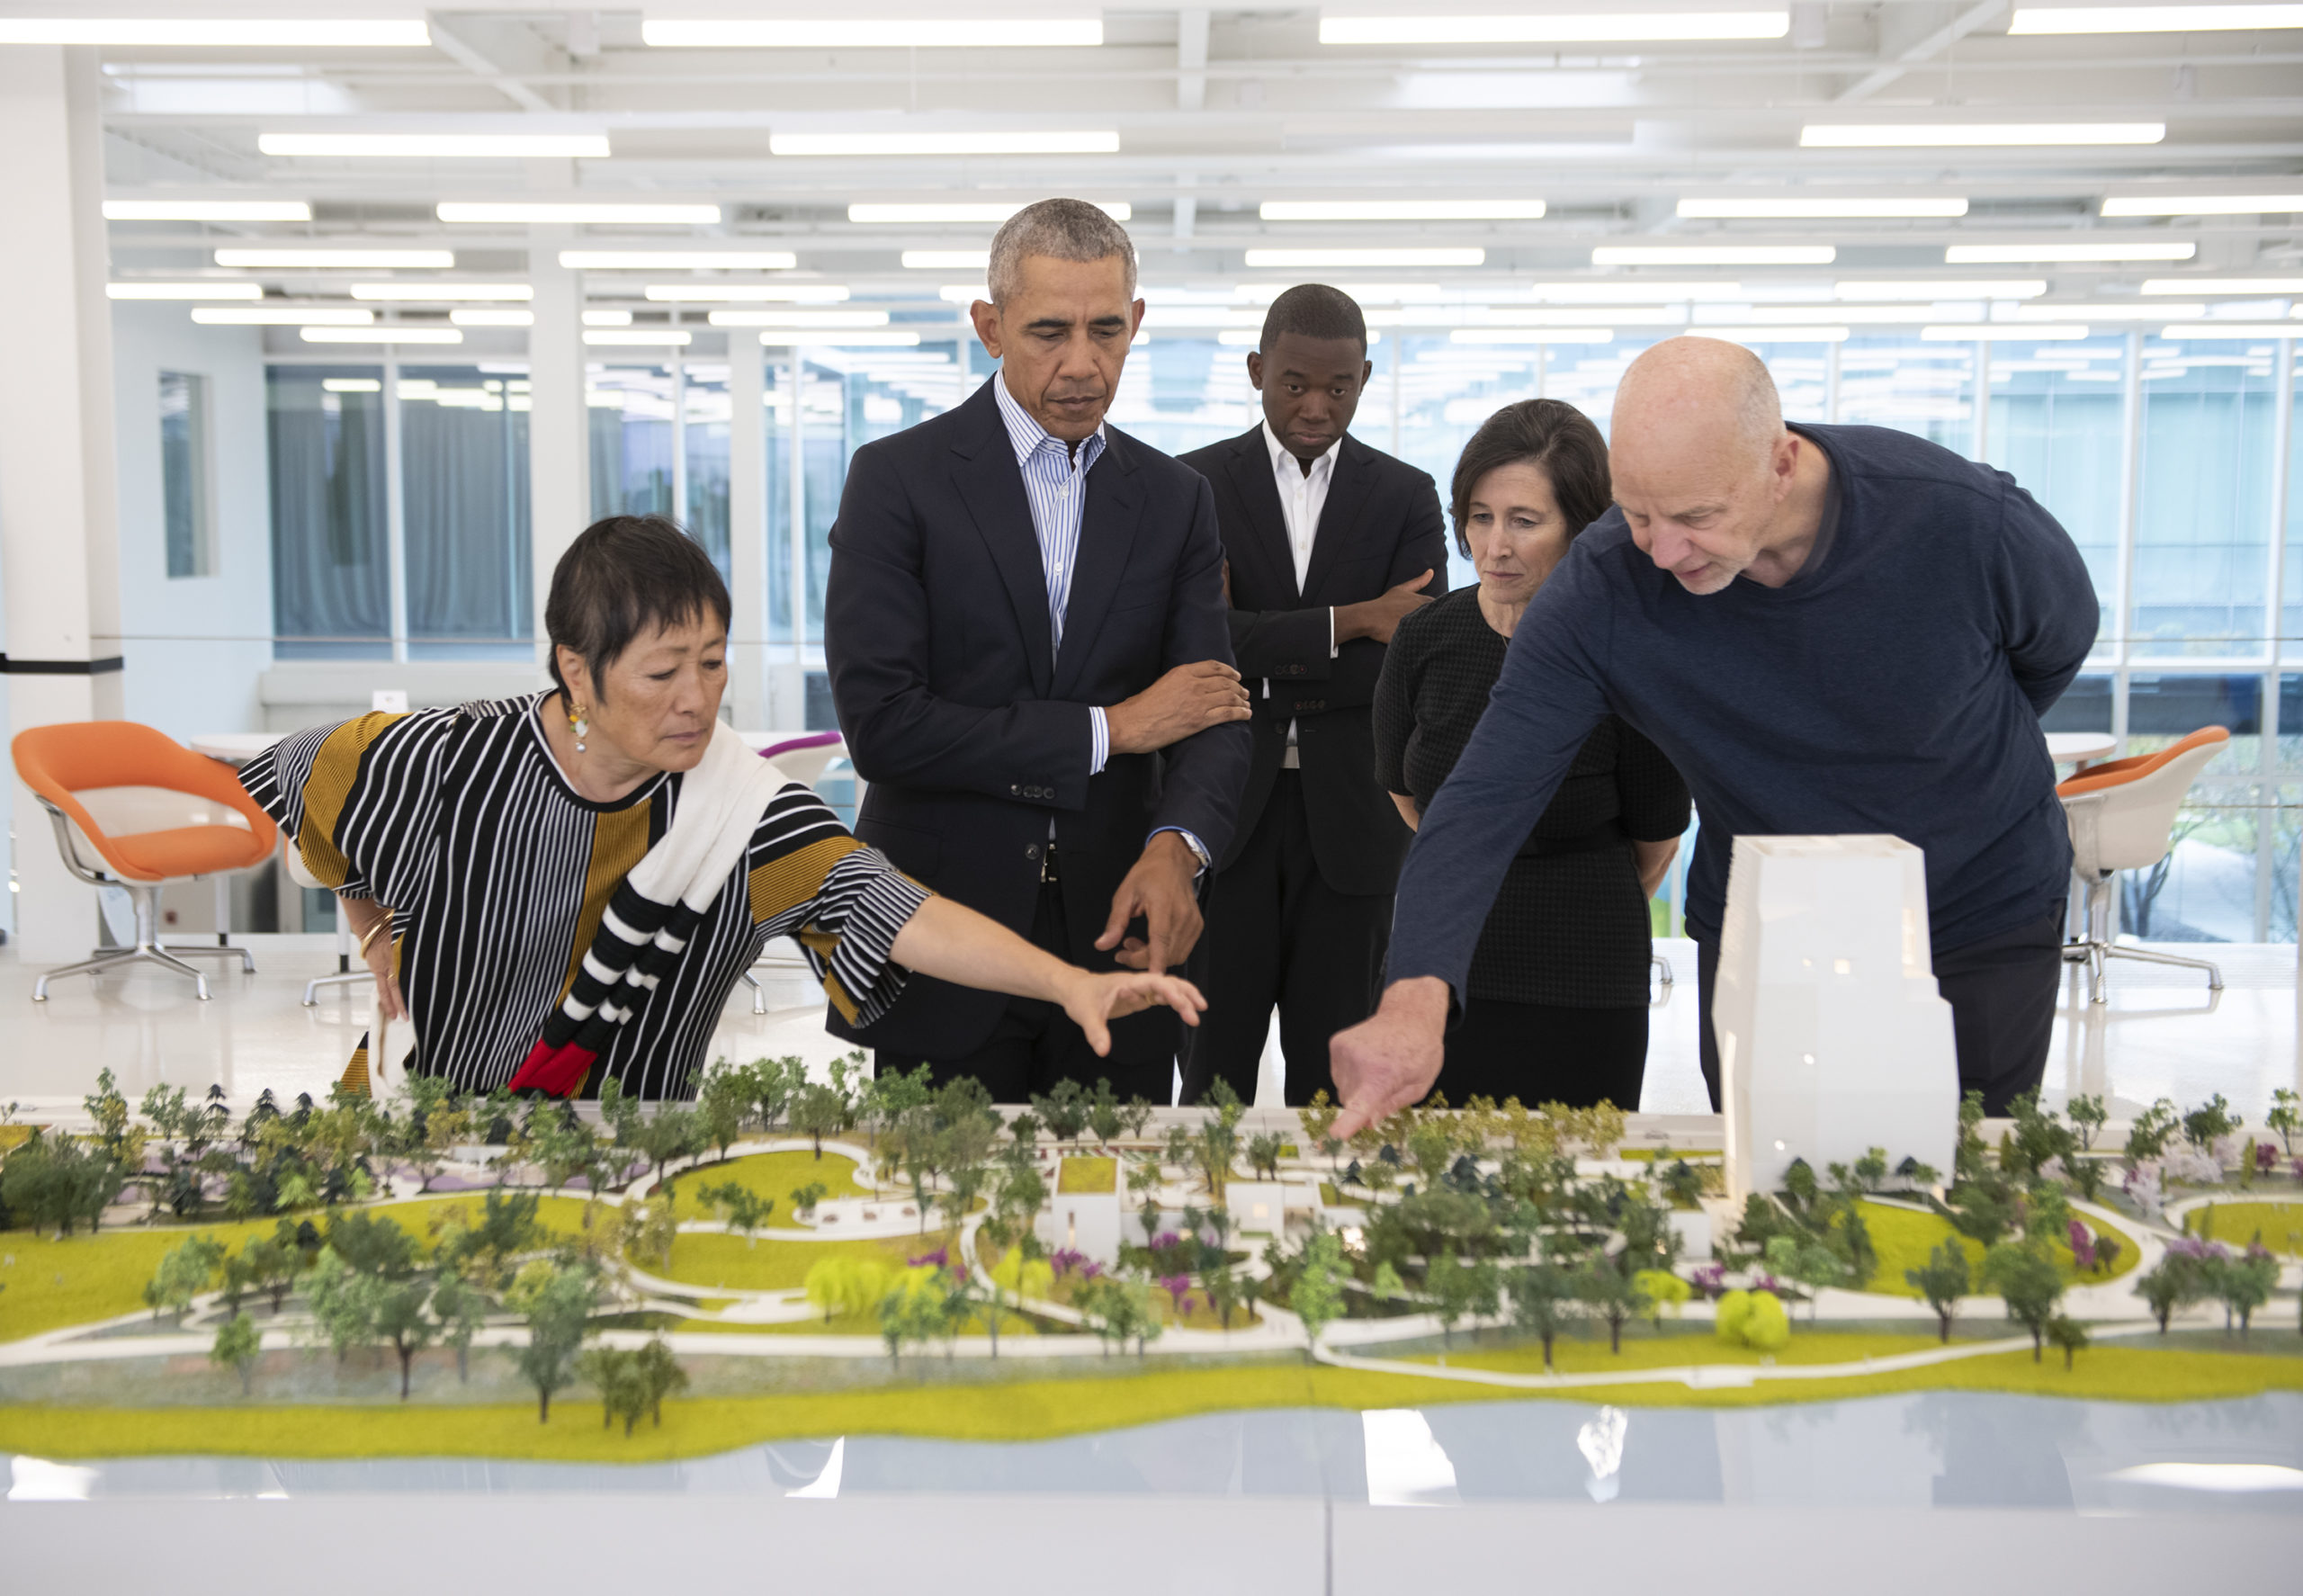 Tod Williams and Billie Tsien point to features of the Obama Presidential Center as President Obama looks on with his arms crossed.